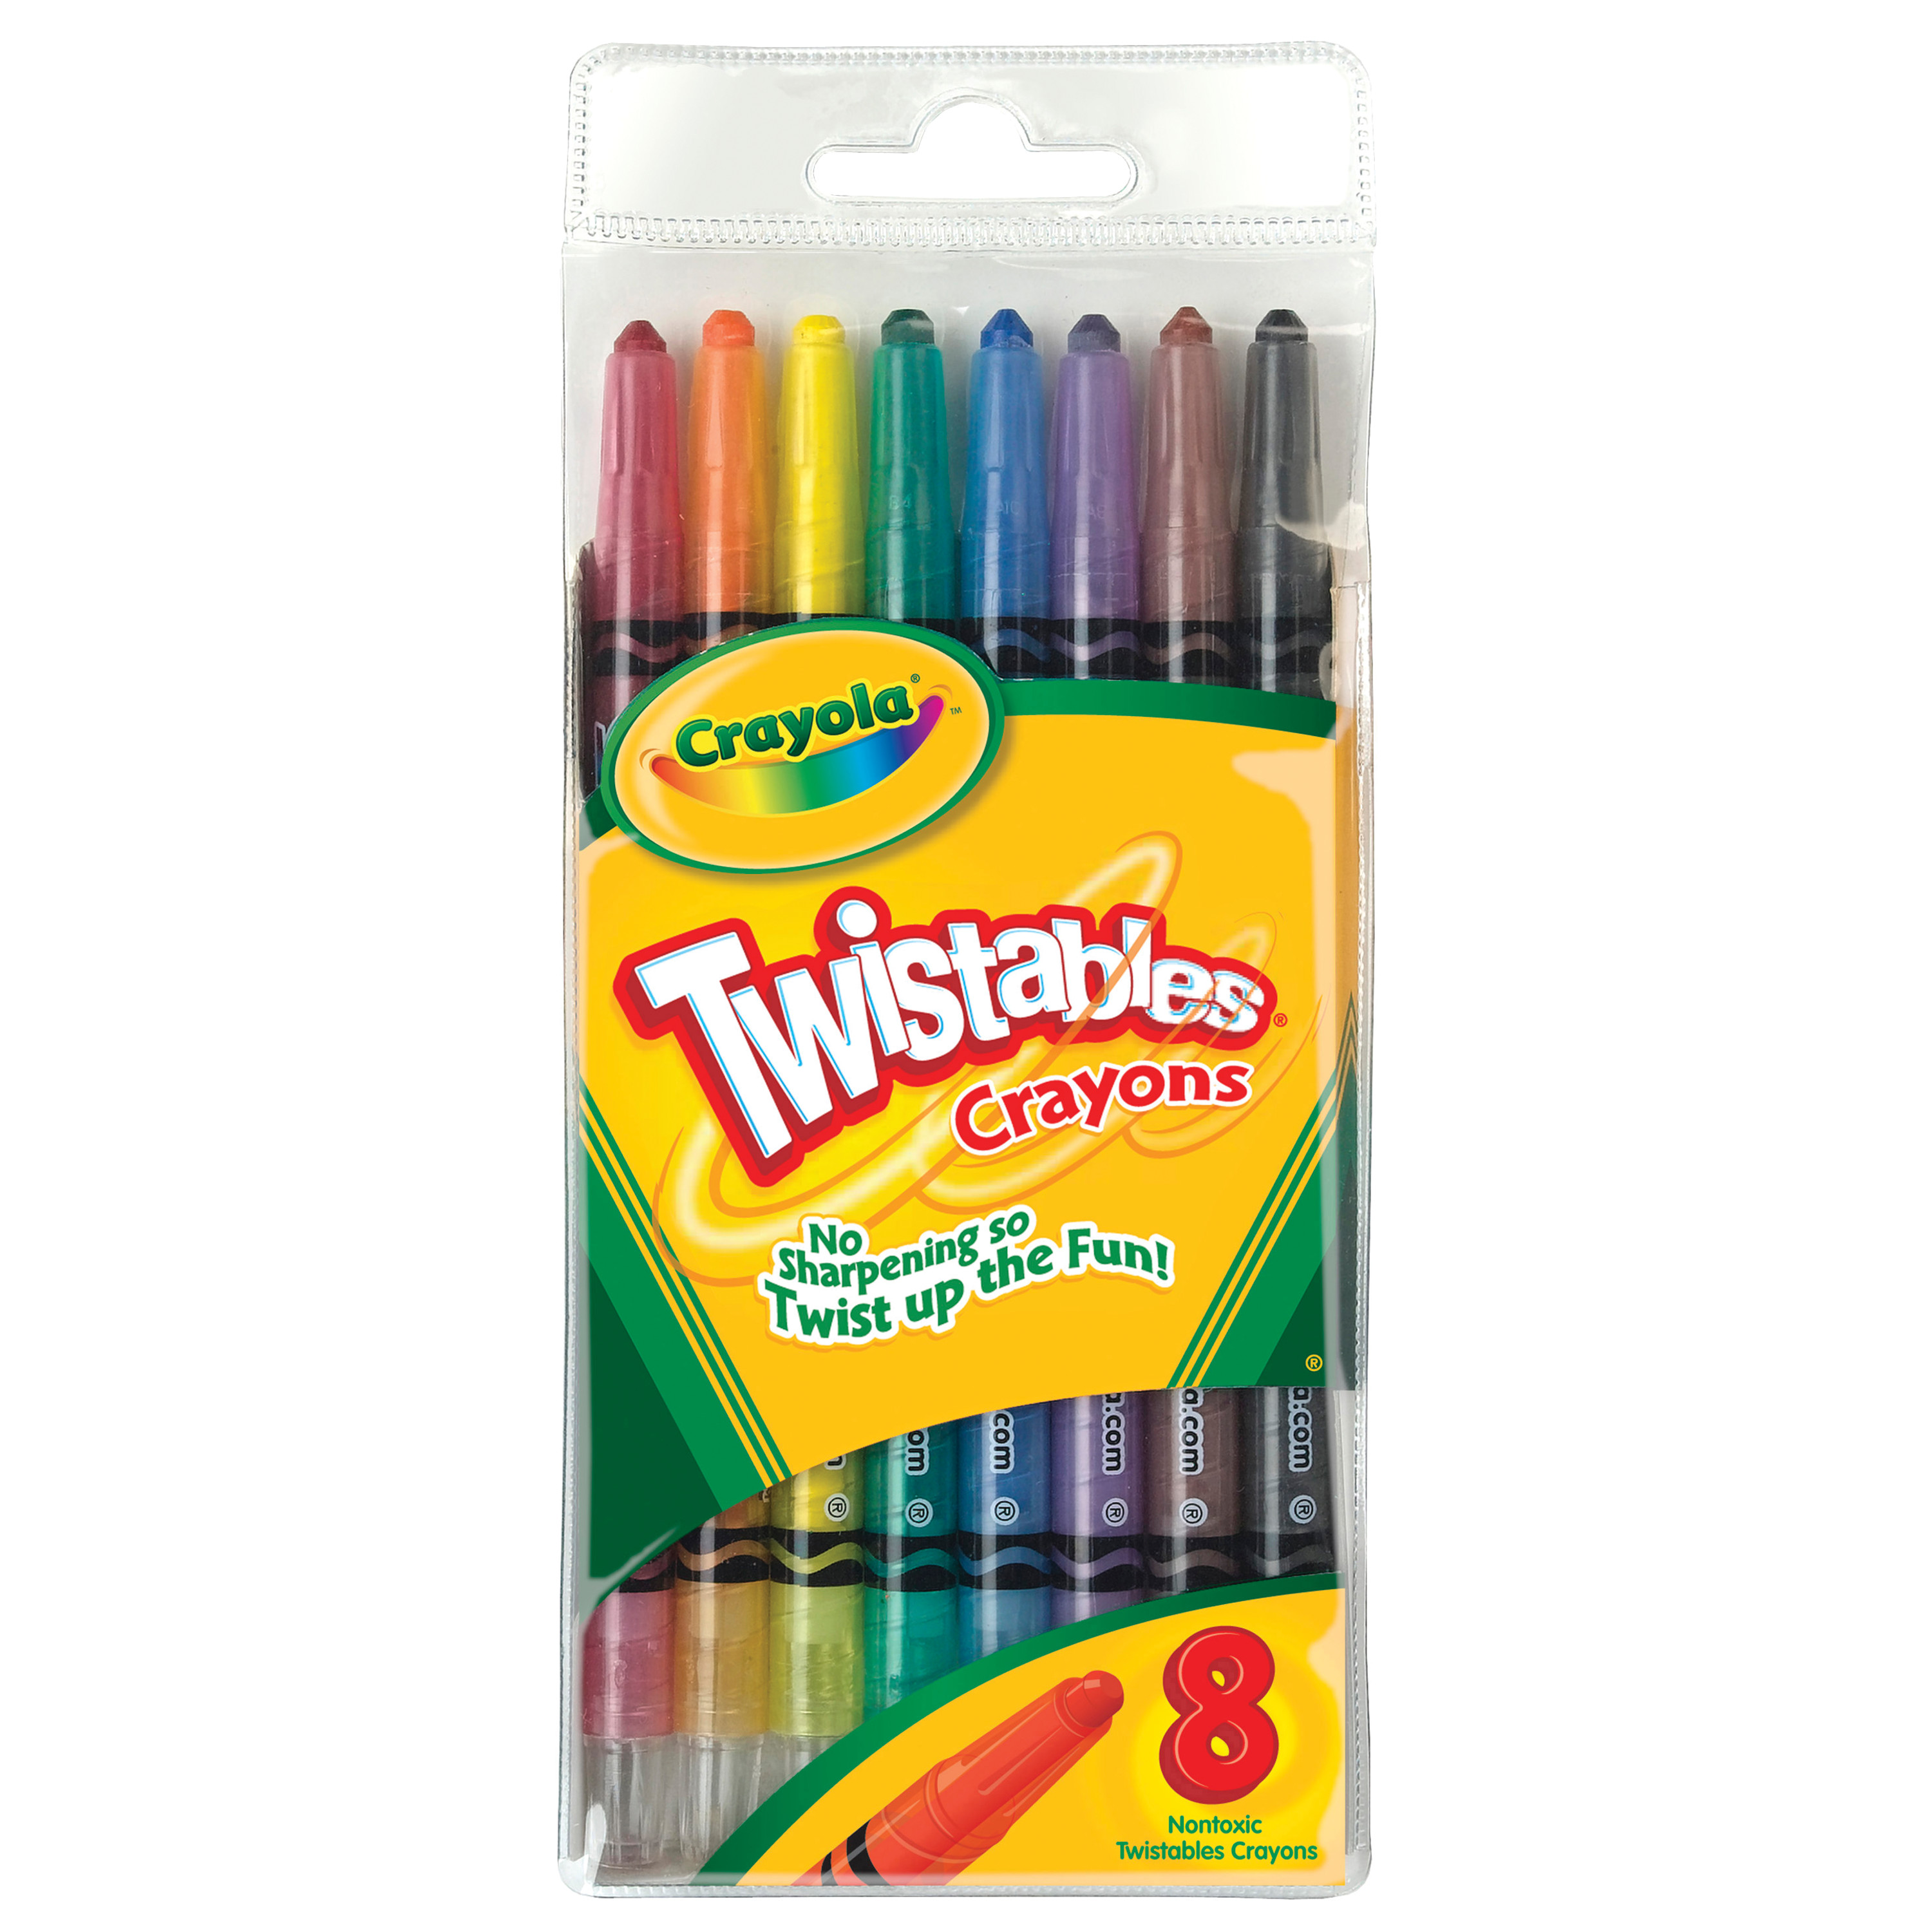 Crayola Twistables Crayon Set, 8 Colors